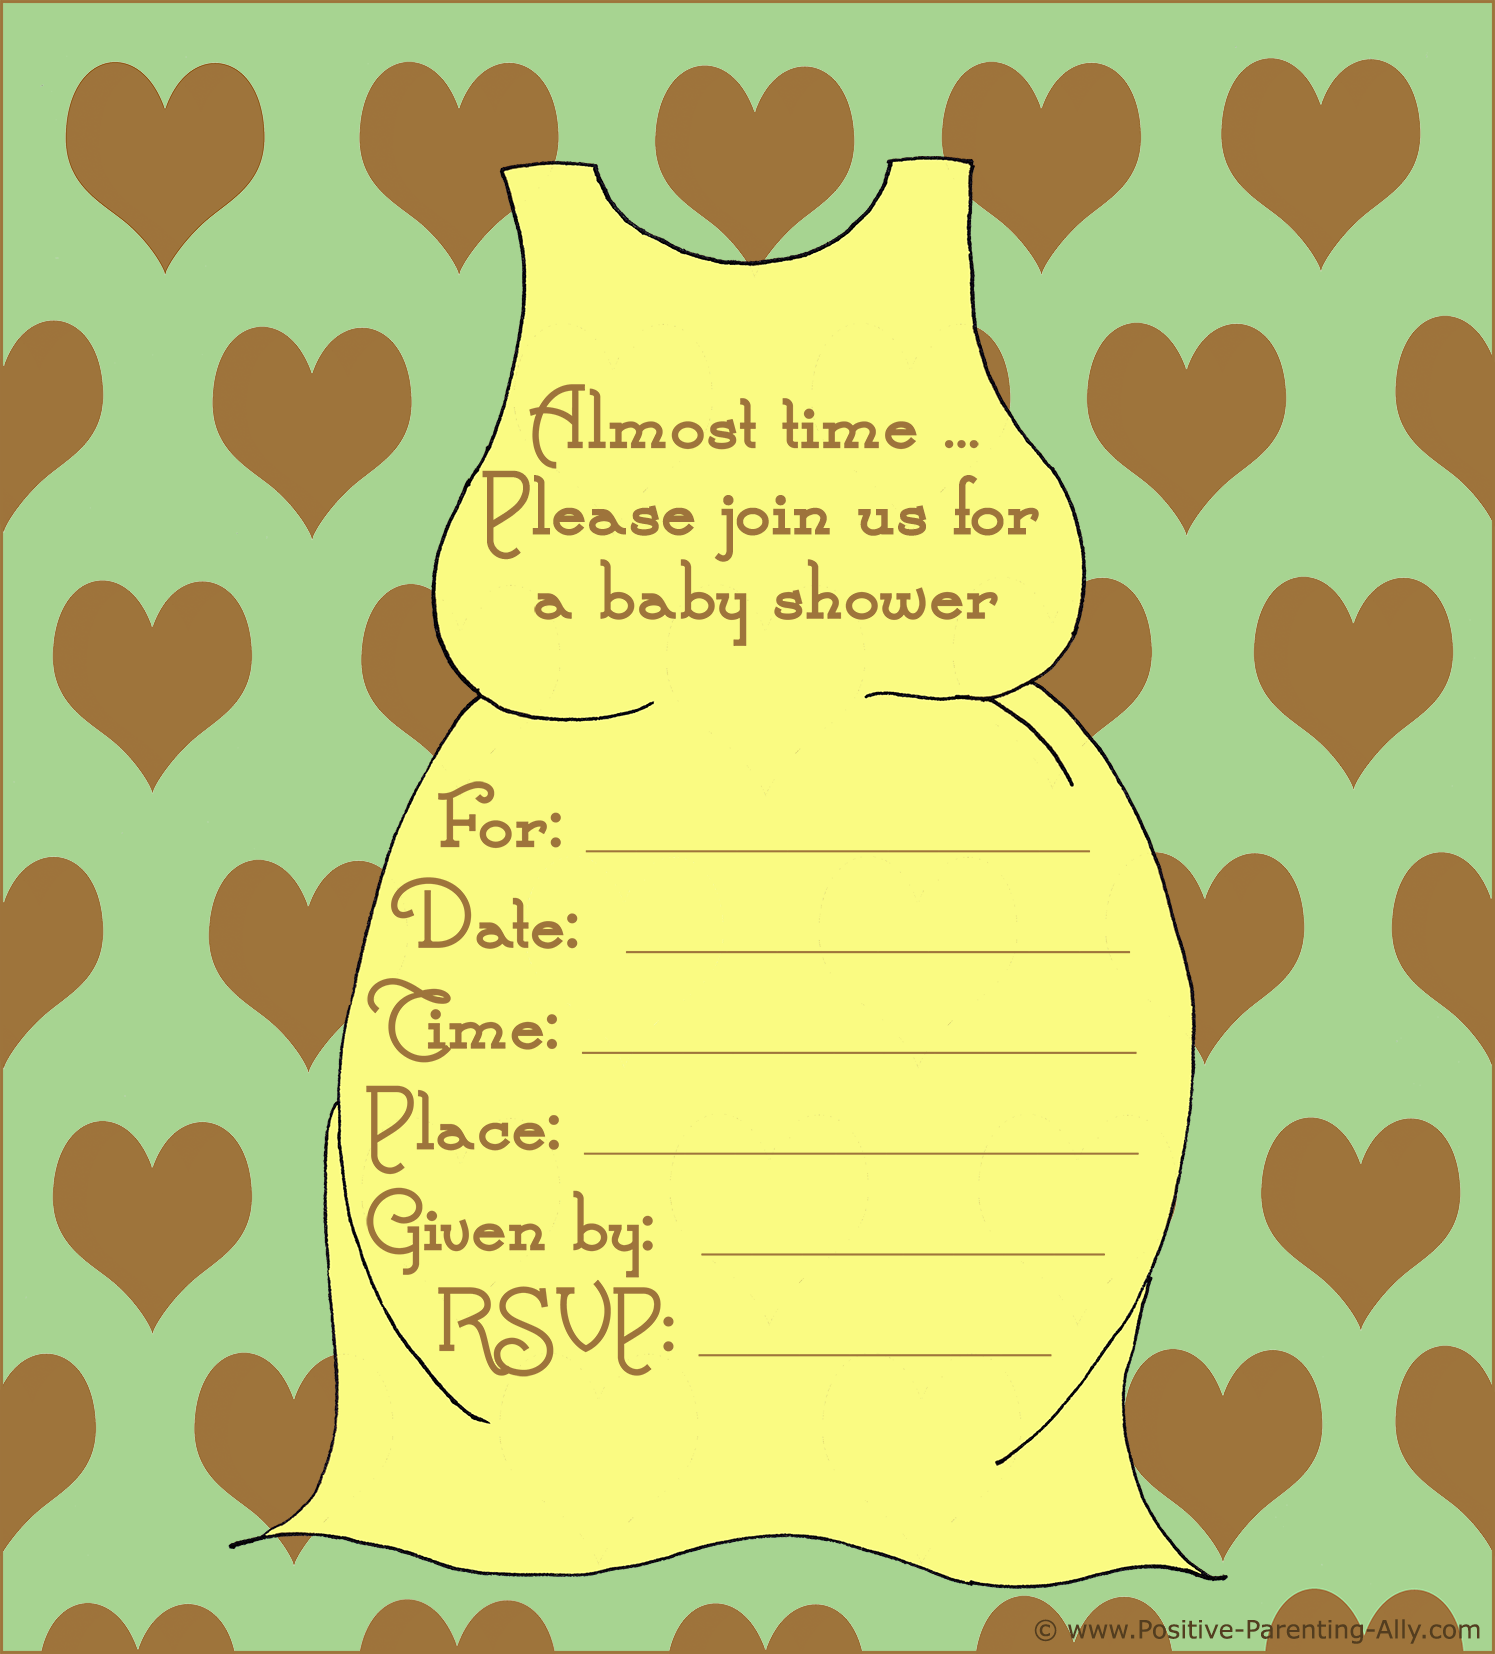 Neutral baby shower invite with pregnant belly dress in retro style.